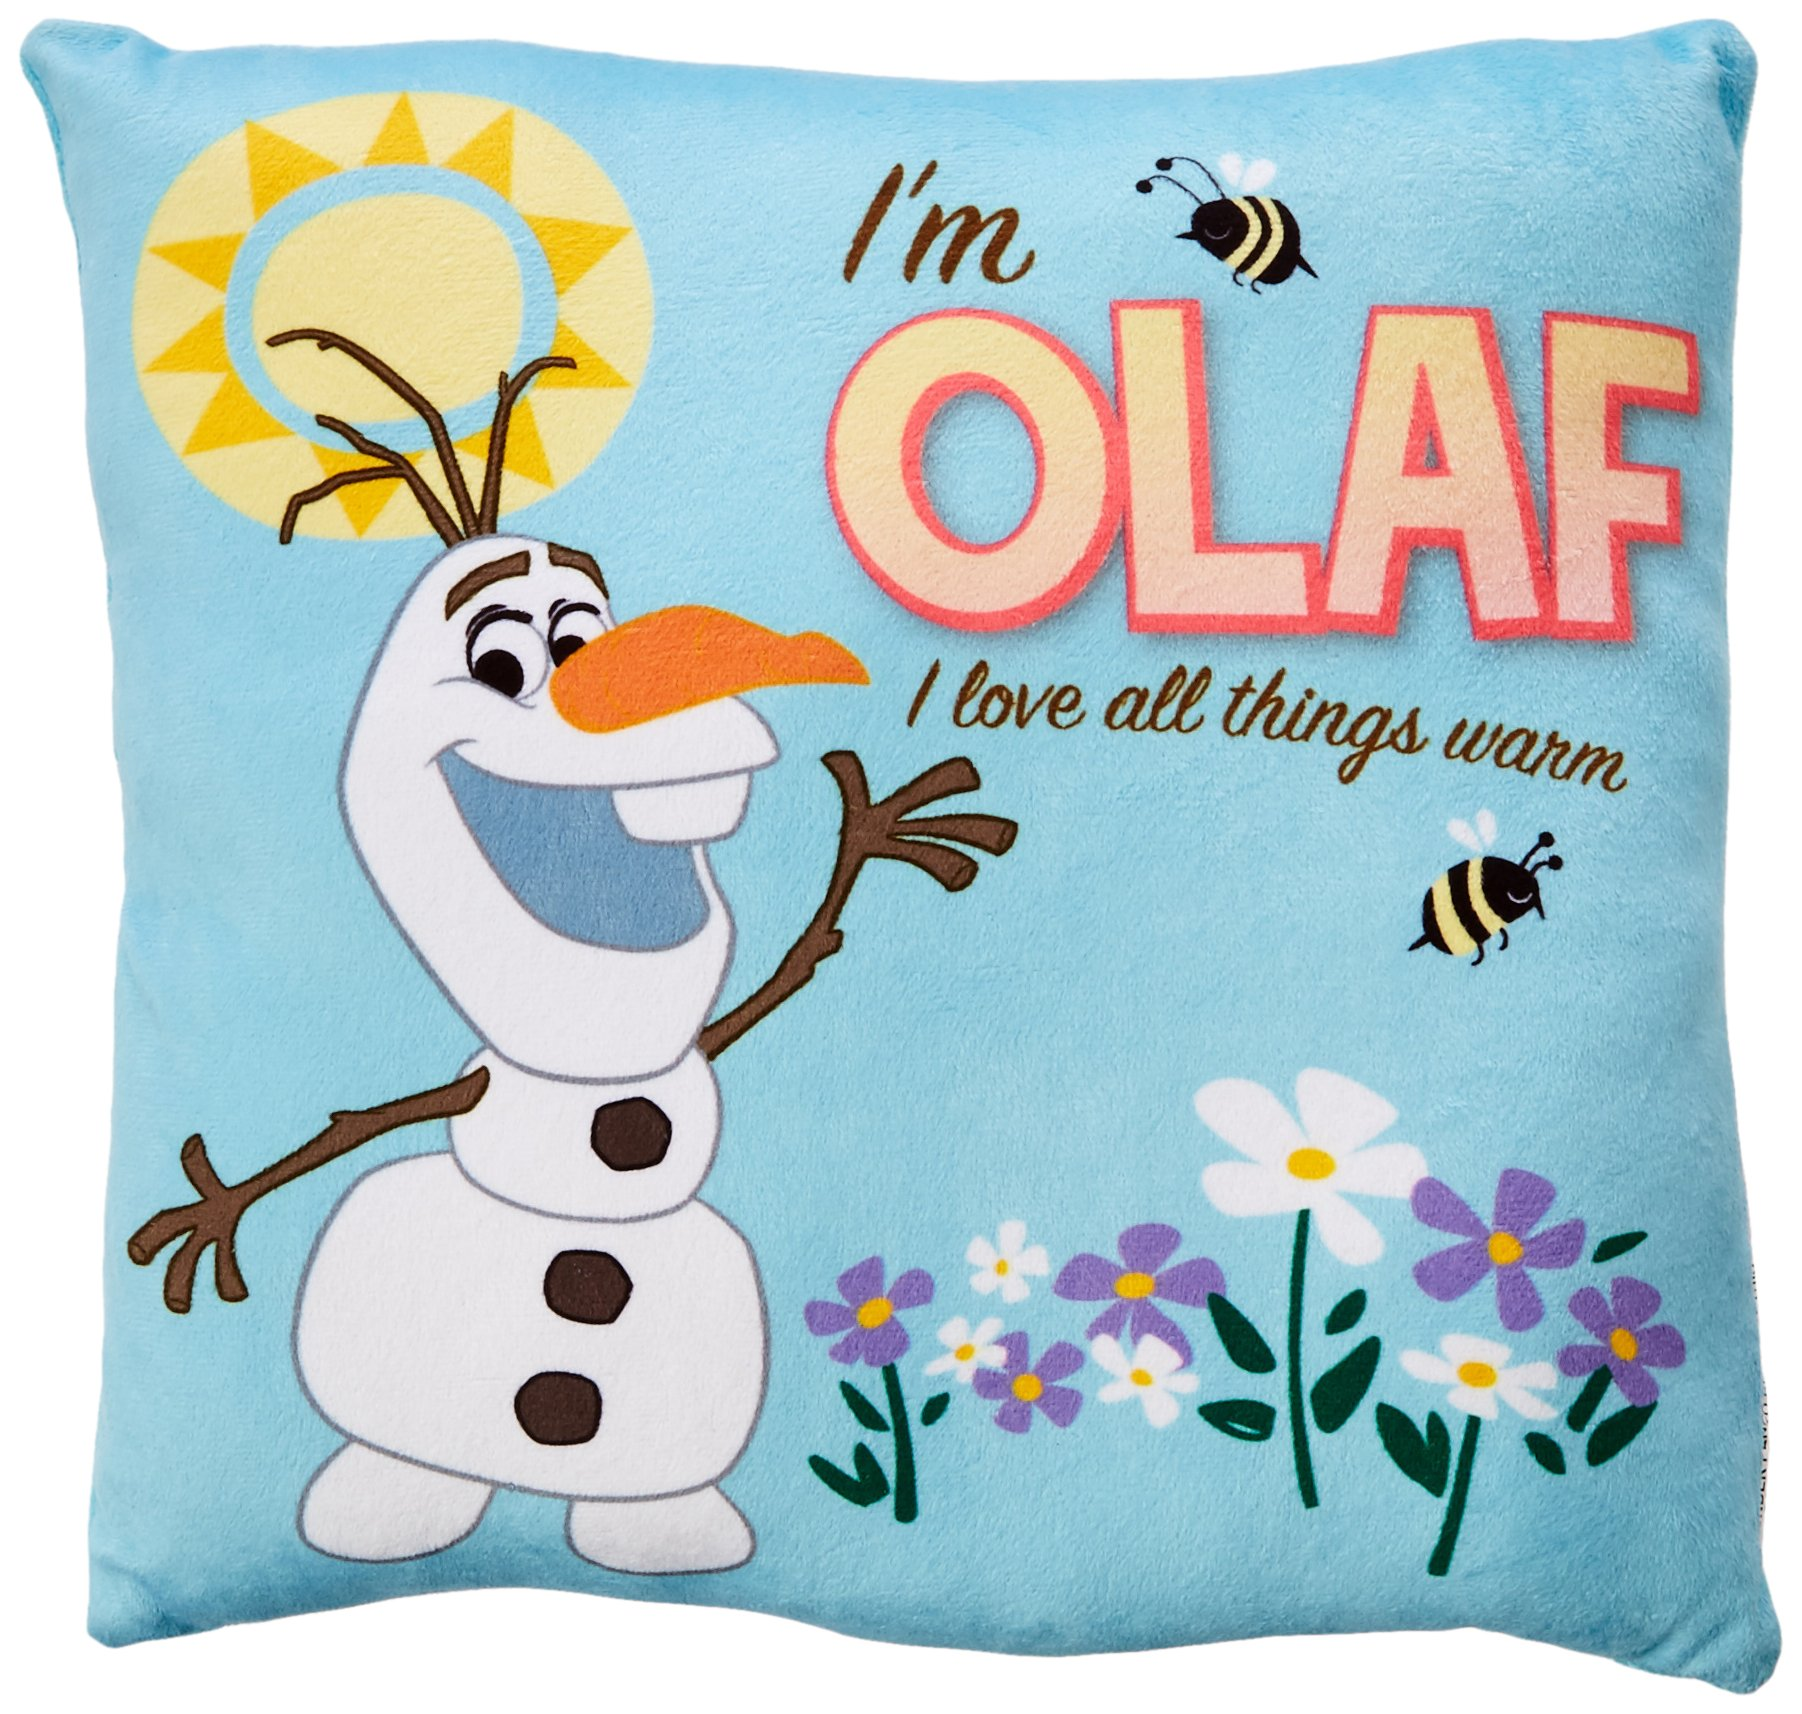 Disney Frozen Olaf Decorative Pillow, 11 by 11'' by Jay Franco